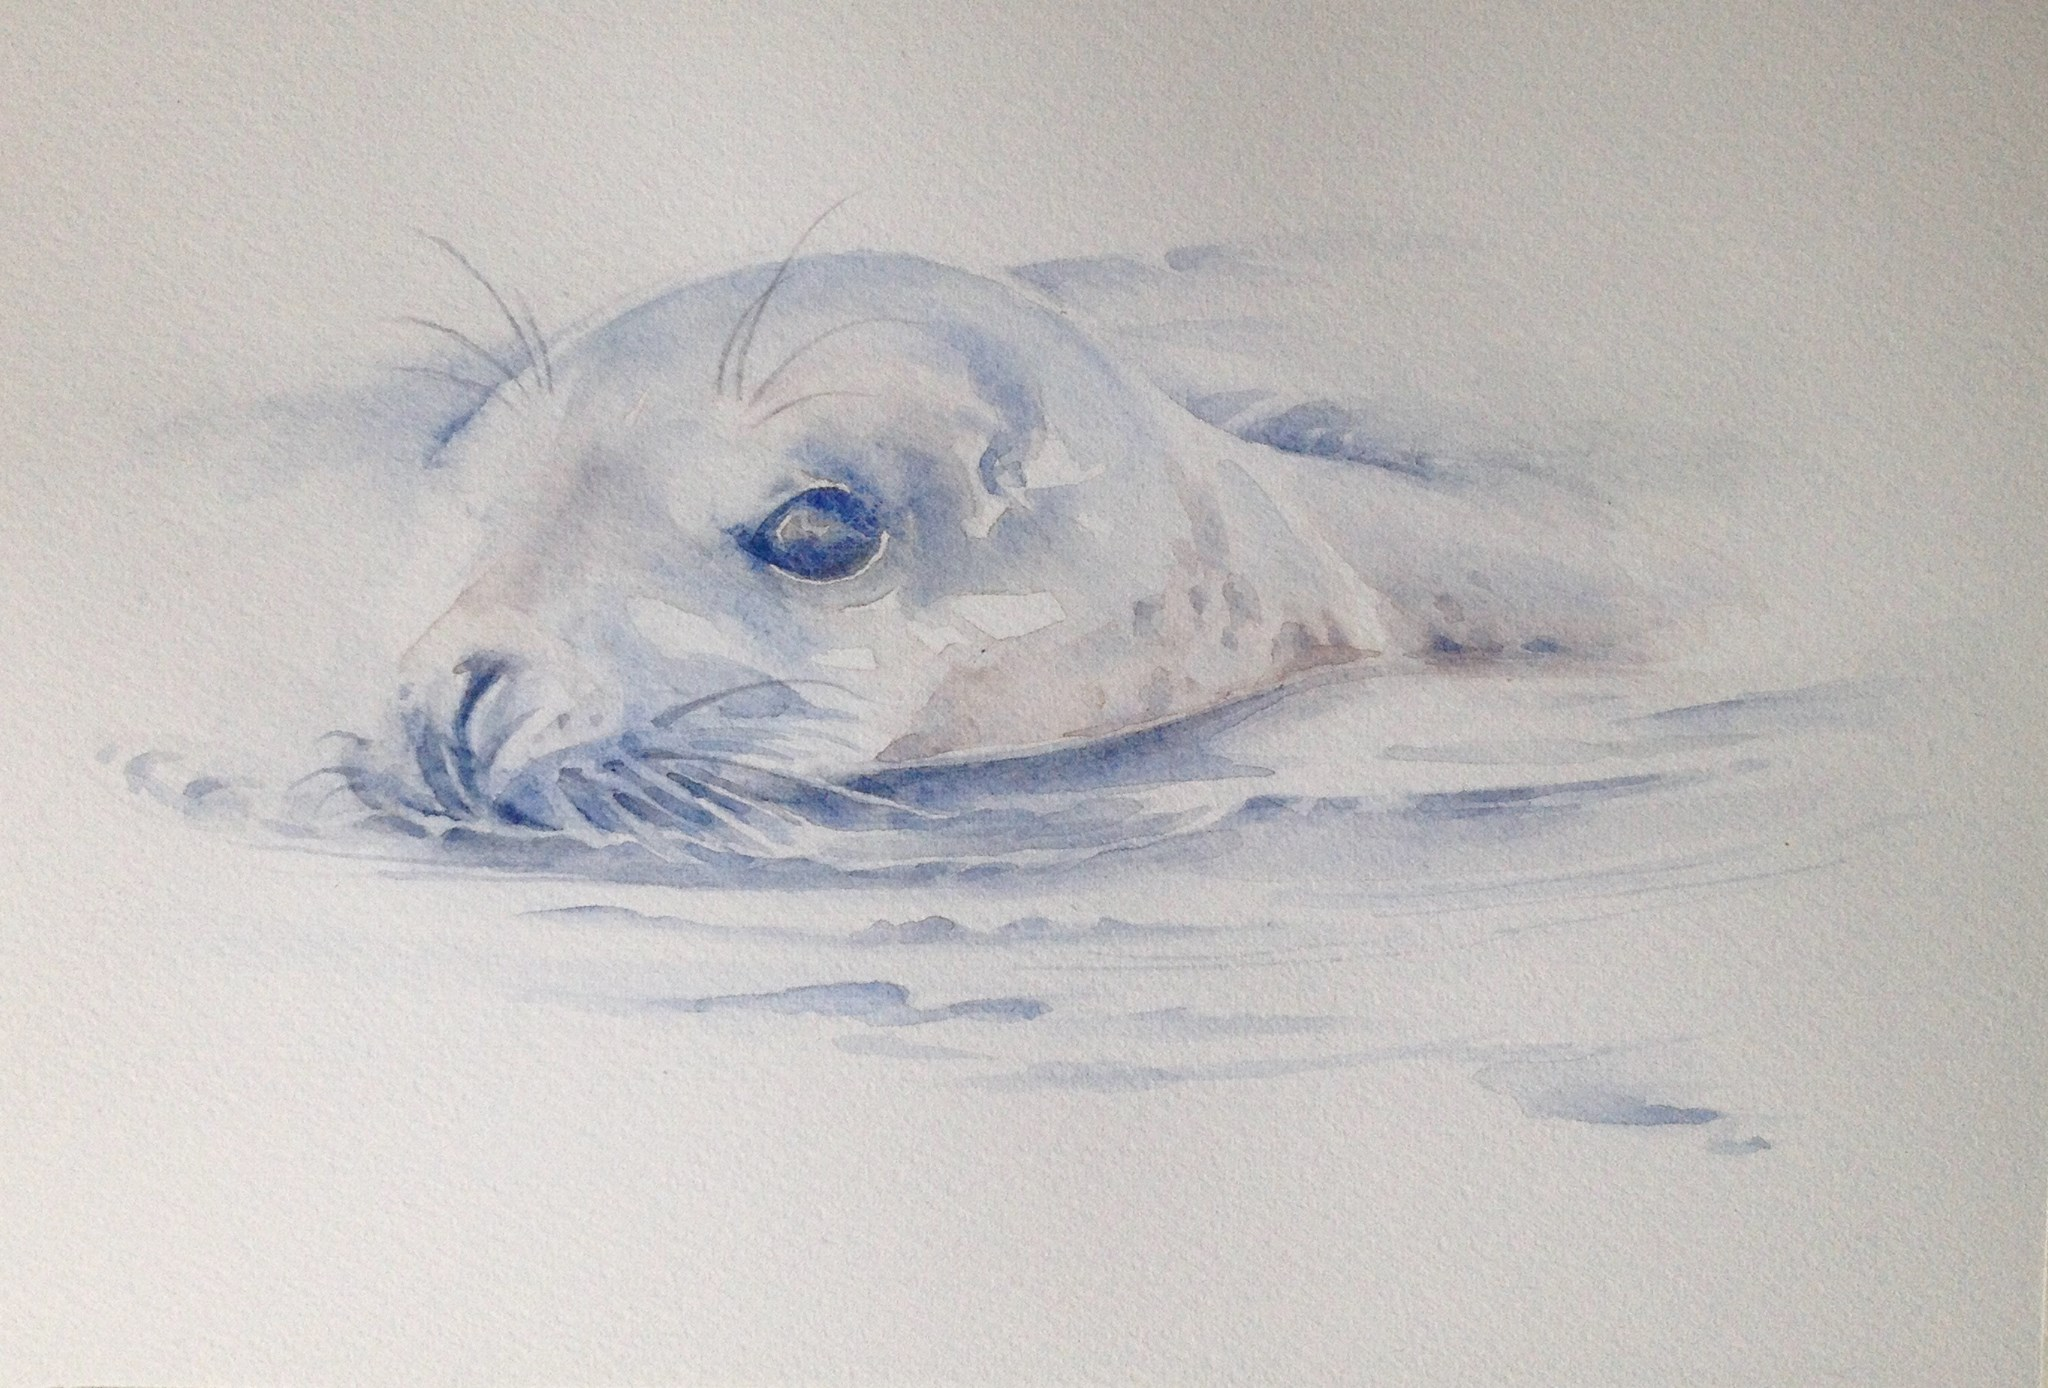 'Grey Seal' Watercolour on Fabriano, 140lb